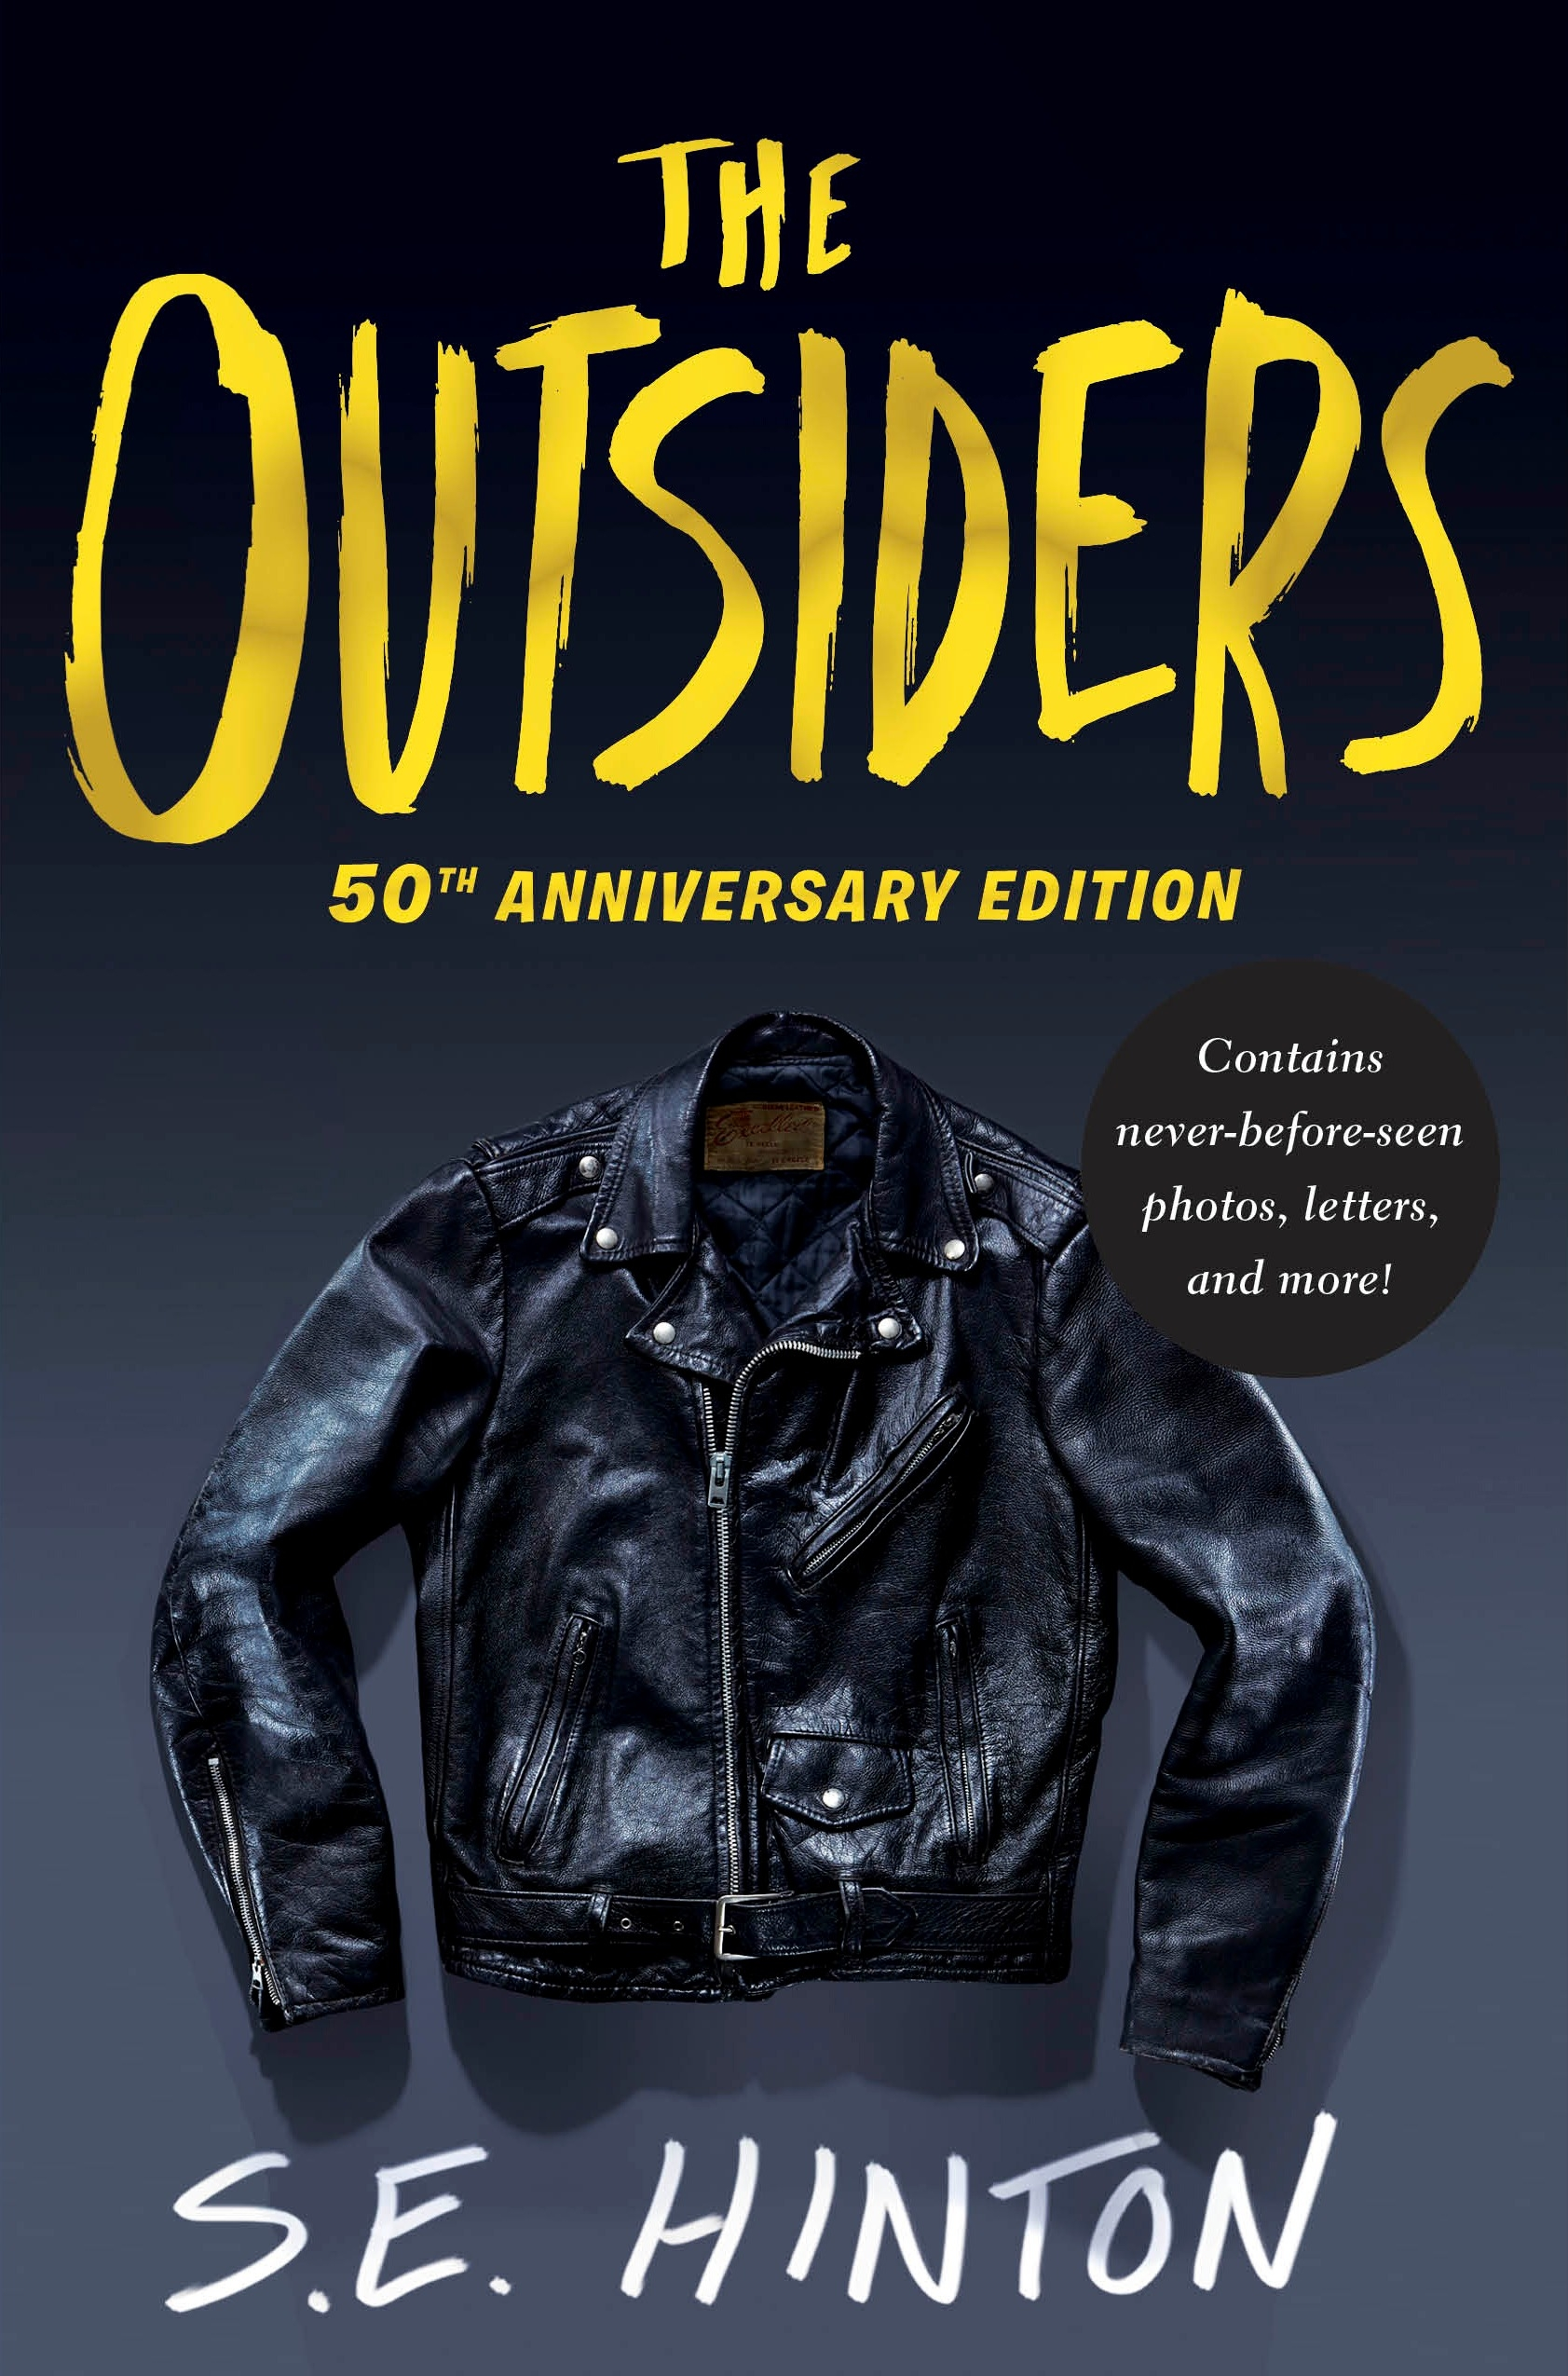 The Outsiders 50th Anniversary Edition by S. E. Hinton, ISBN: 9780425288290